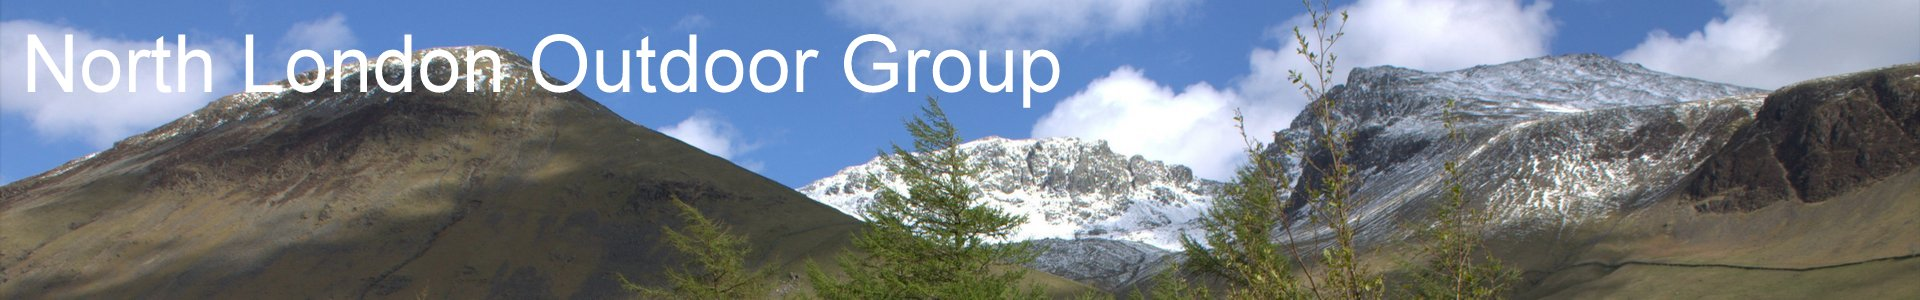 North London Outdoor Group banner image